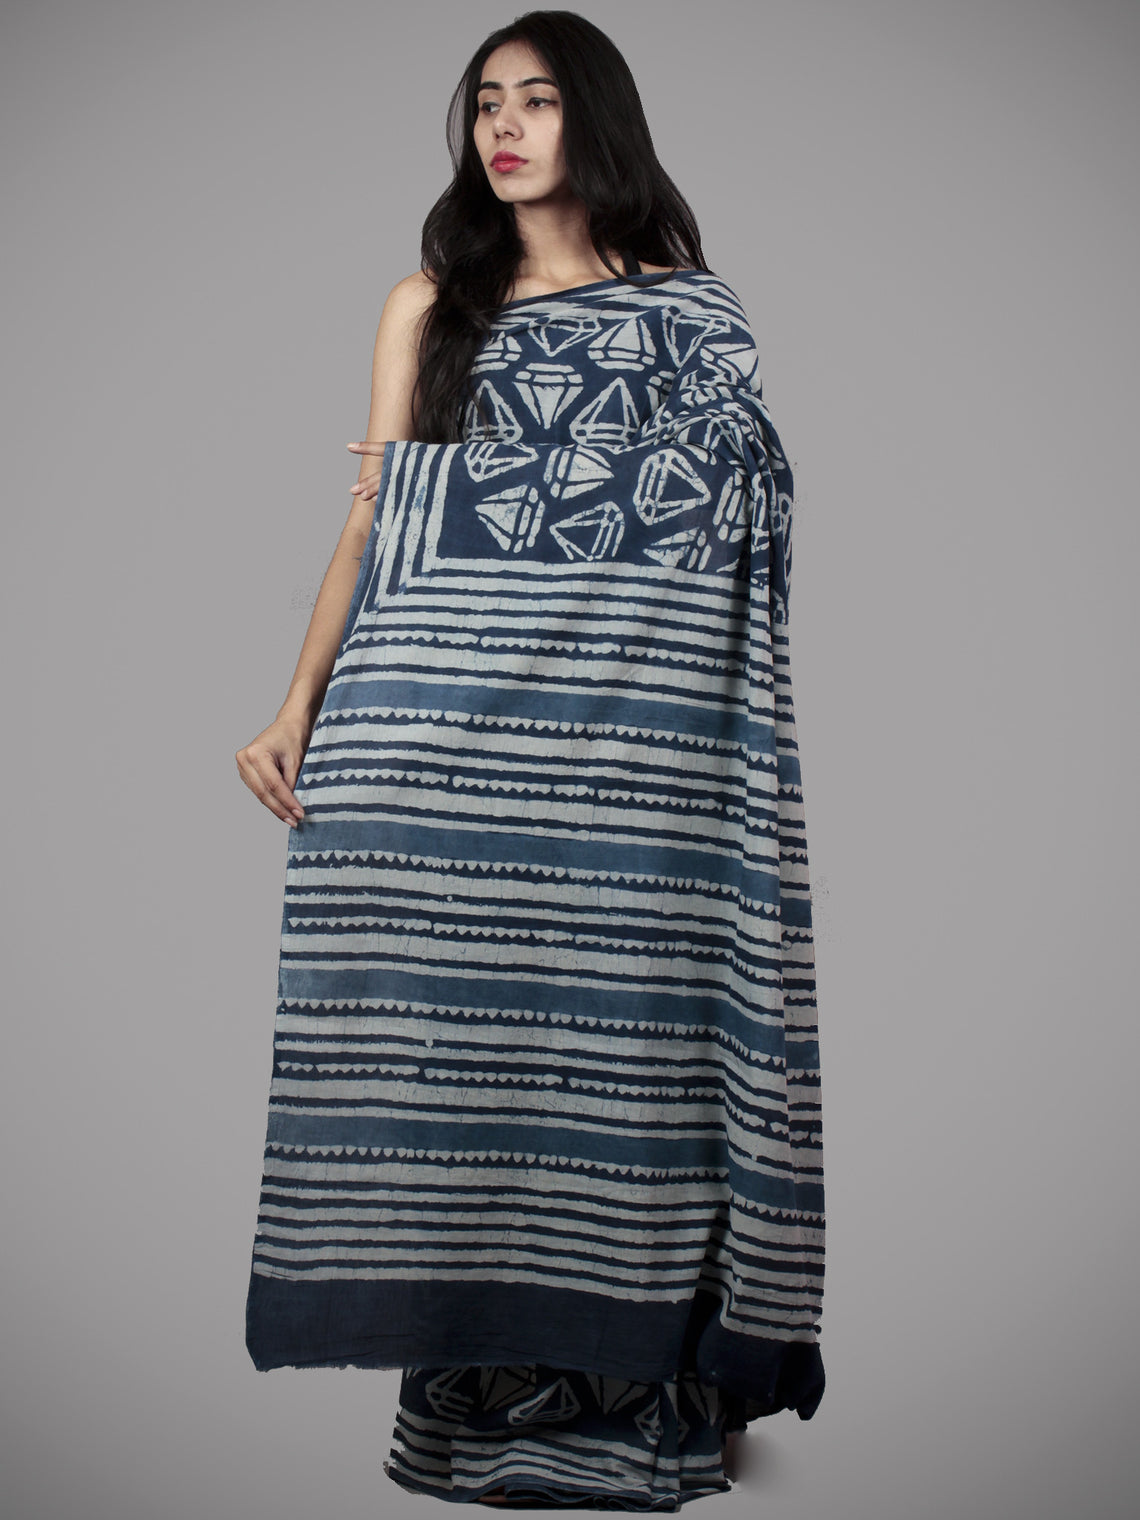 Indigo Ivory Hand Block Printed in Natural Colors Cotton Saree - S031701502